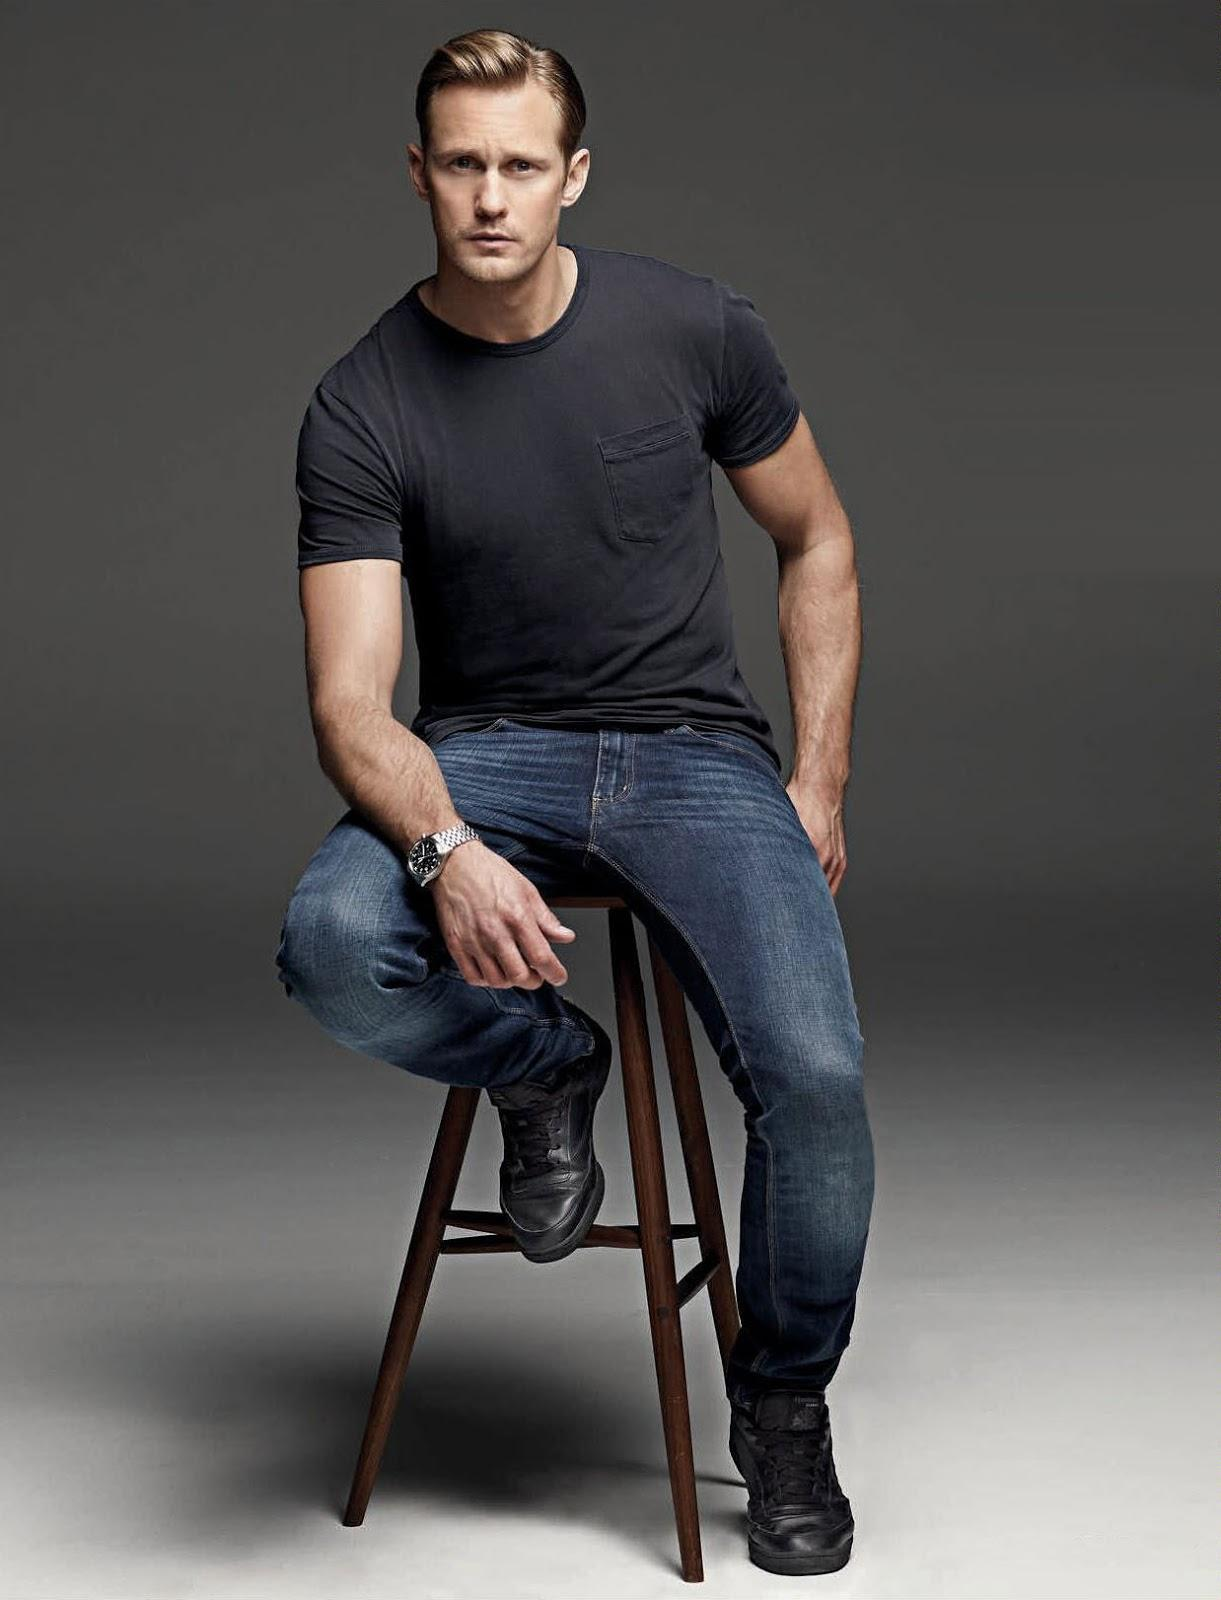 Alexander Skarsgard hot images